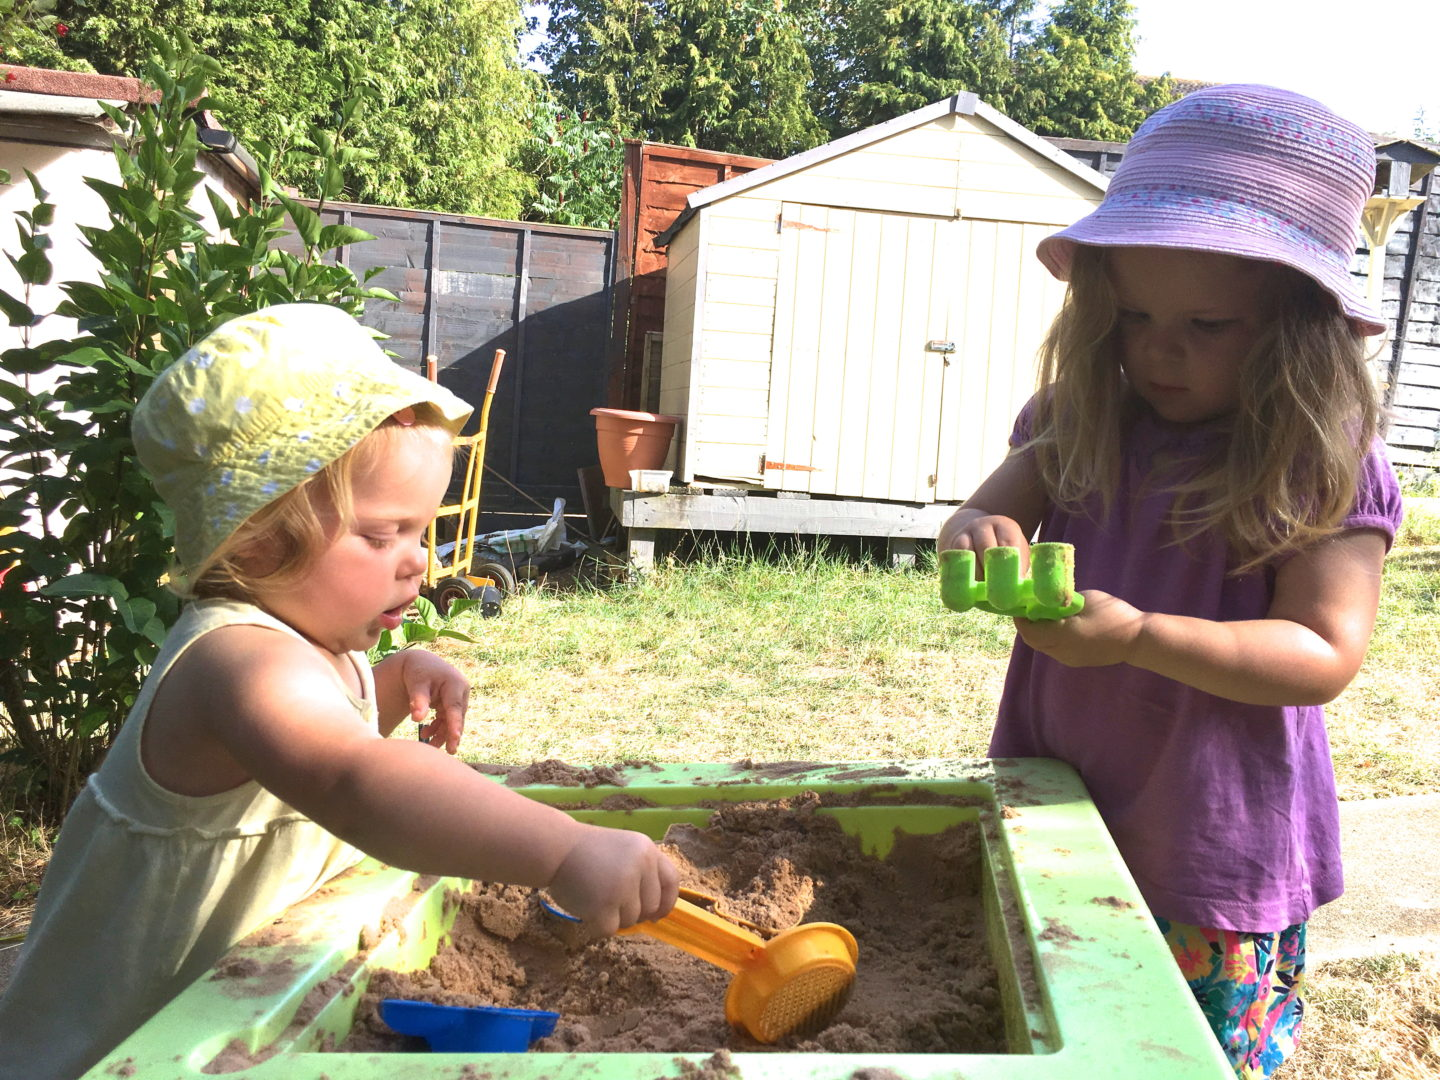 Two sisters playing side by side at a sand pit with sun hats on